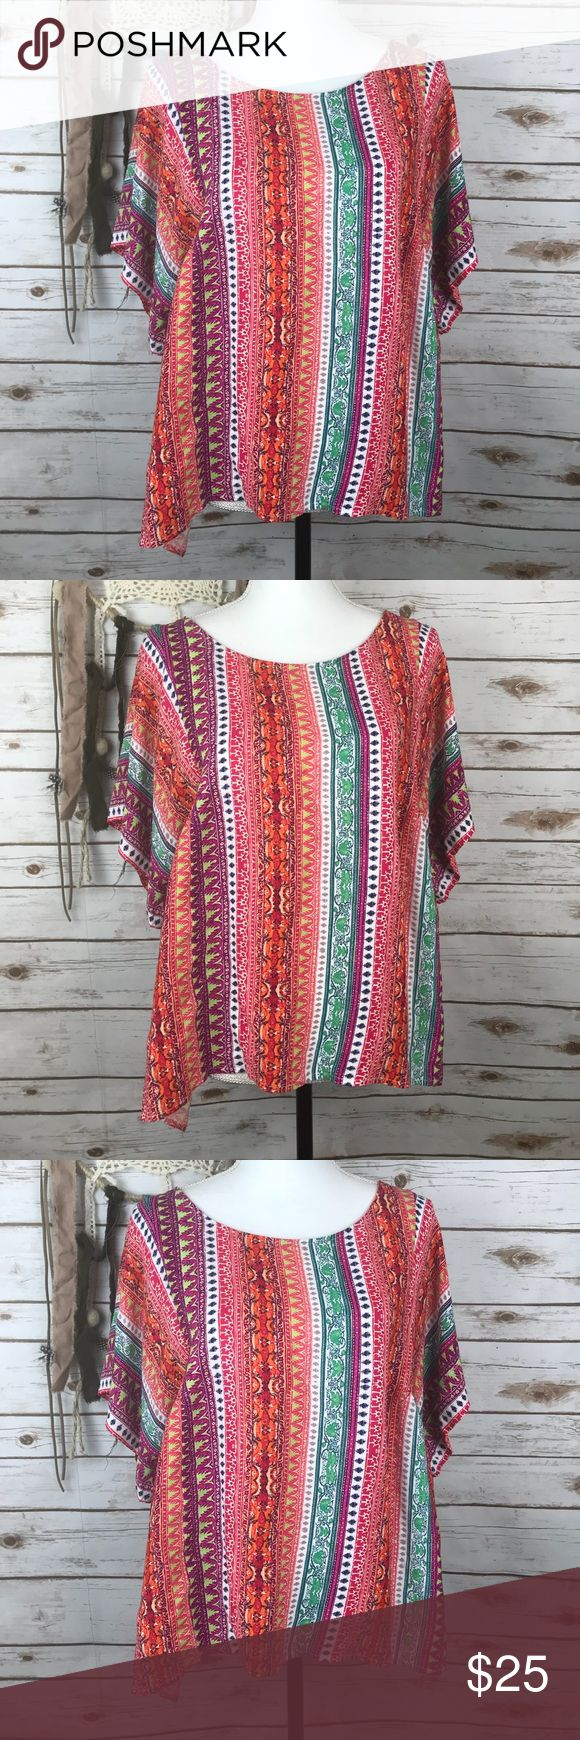 """Maeve Boho Aztec Batwing Blouse Pink Multi Color Size Large  Bust: 23"""" Length: 25"""" Batwing Short Sleeve  Boxy Fit  Aztec Print  100% Viscose  Dry Clean   In excellent condition  No rips, holes, or stains Anthropologie Tops Blouses"""